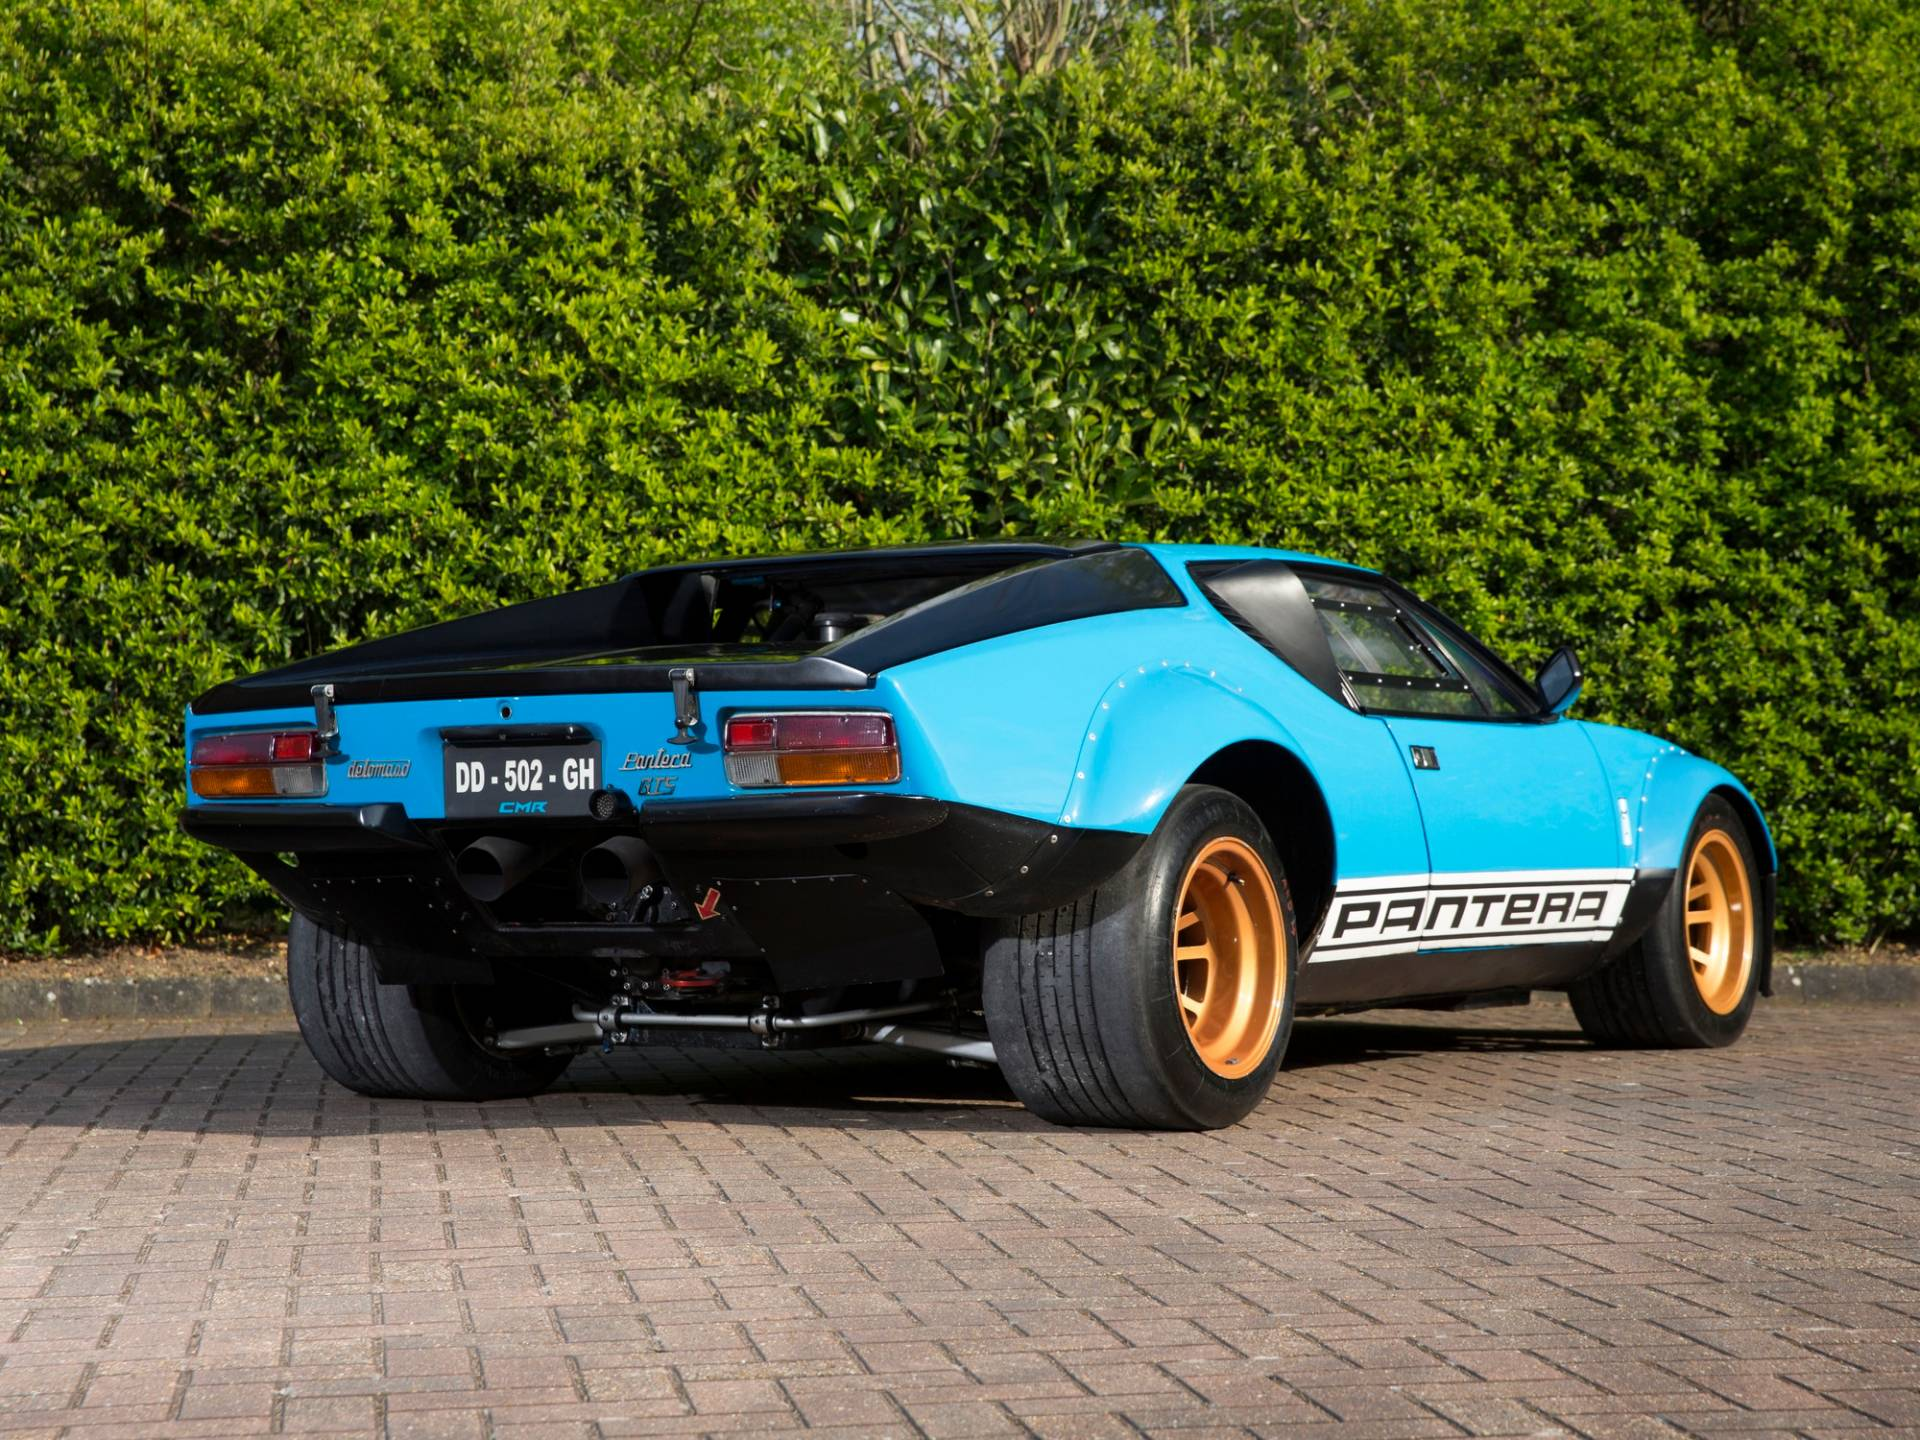 For Sale De Tomaso Pantera GTS 1973 offered for GBP 250 000